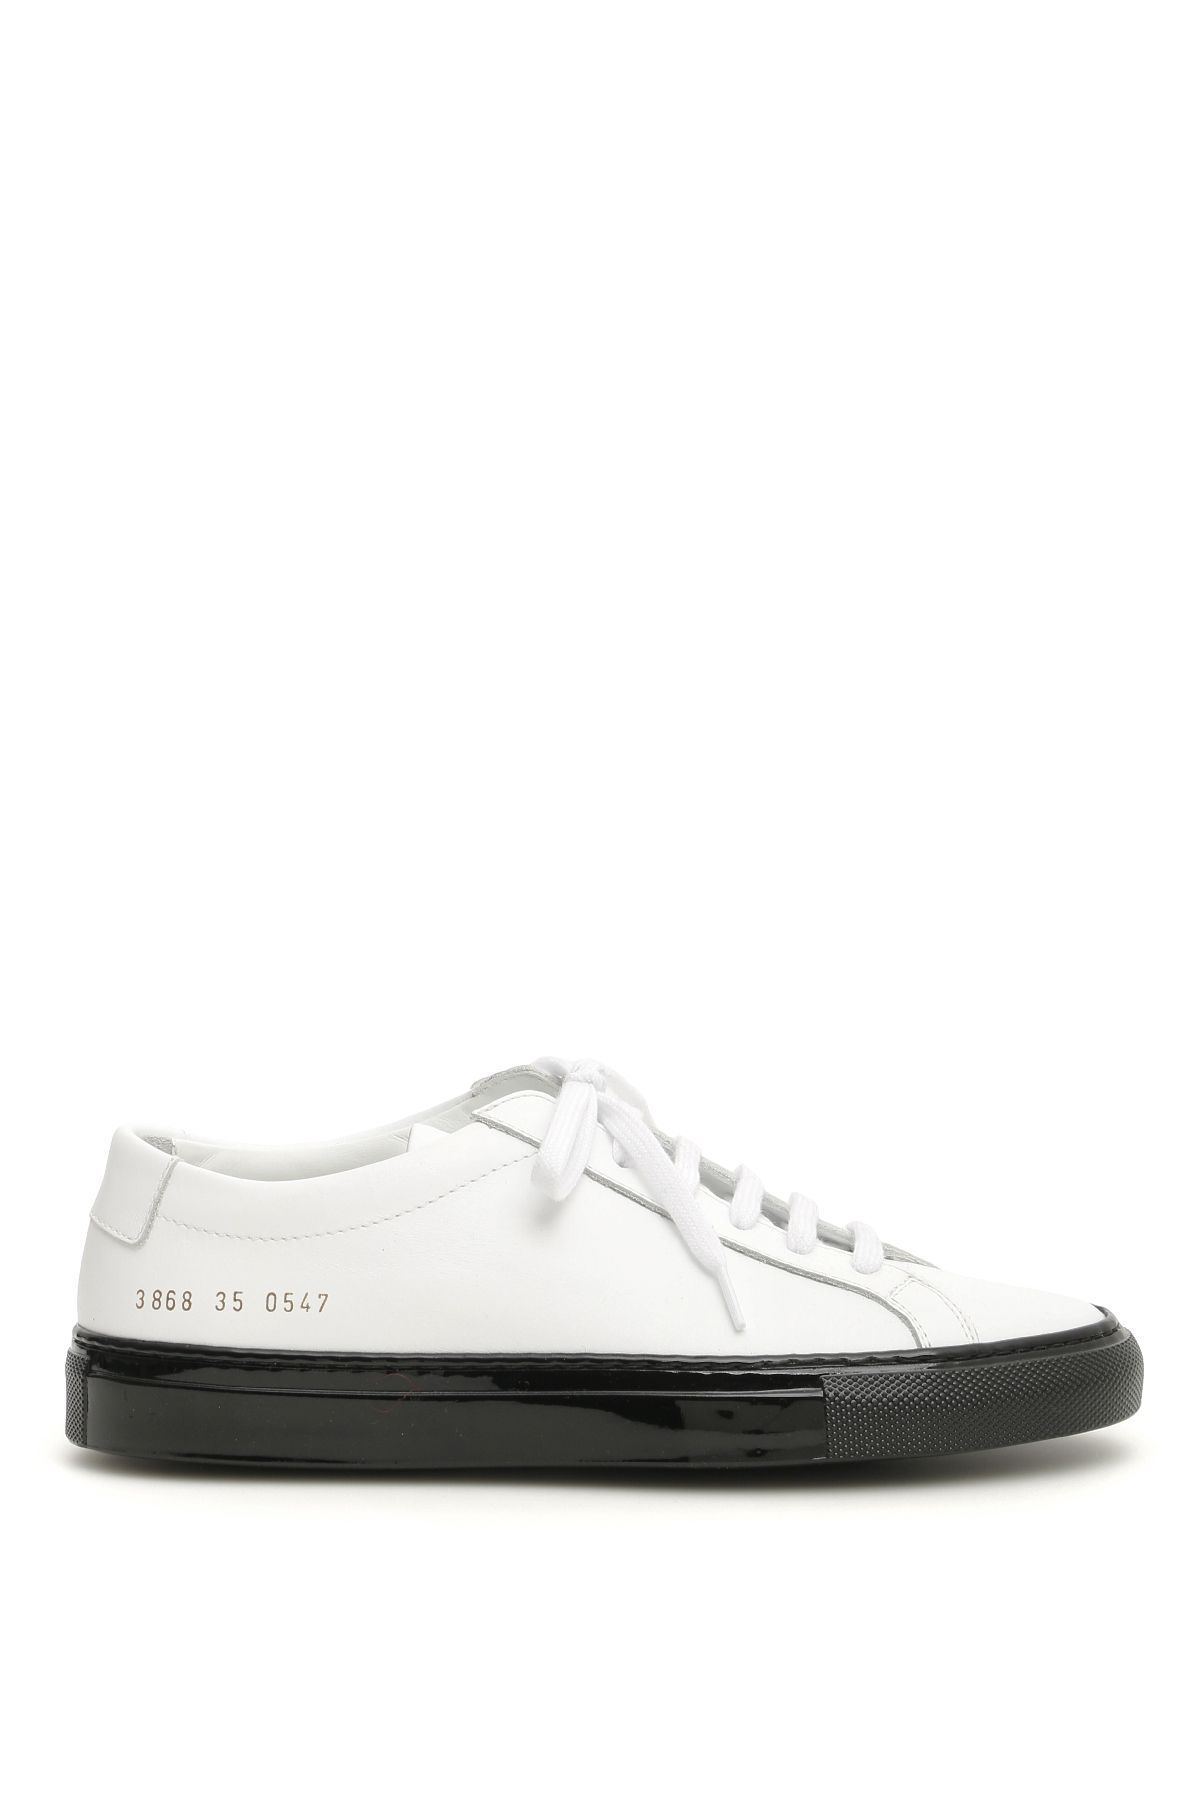 common projects calzature donna sneaker achilles shiny